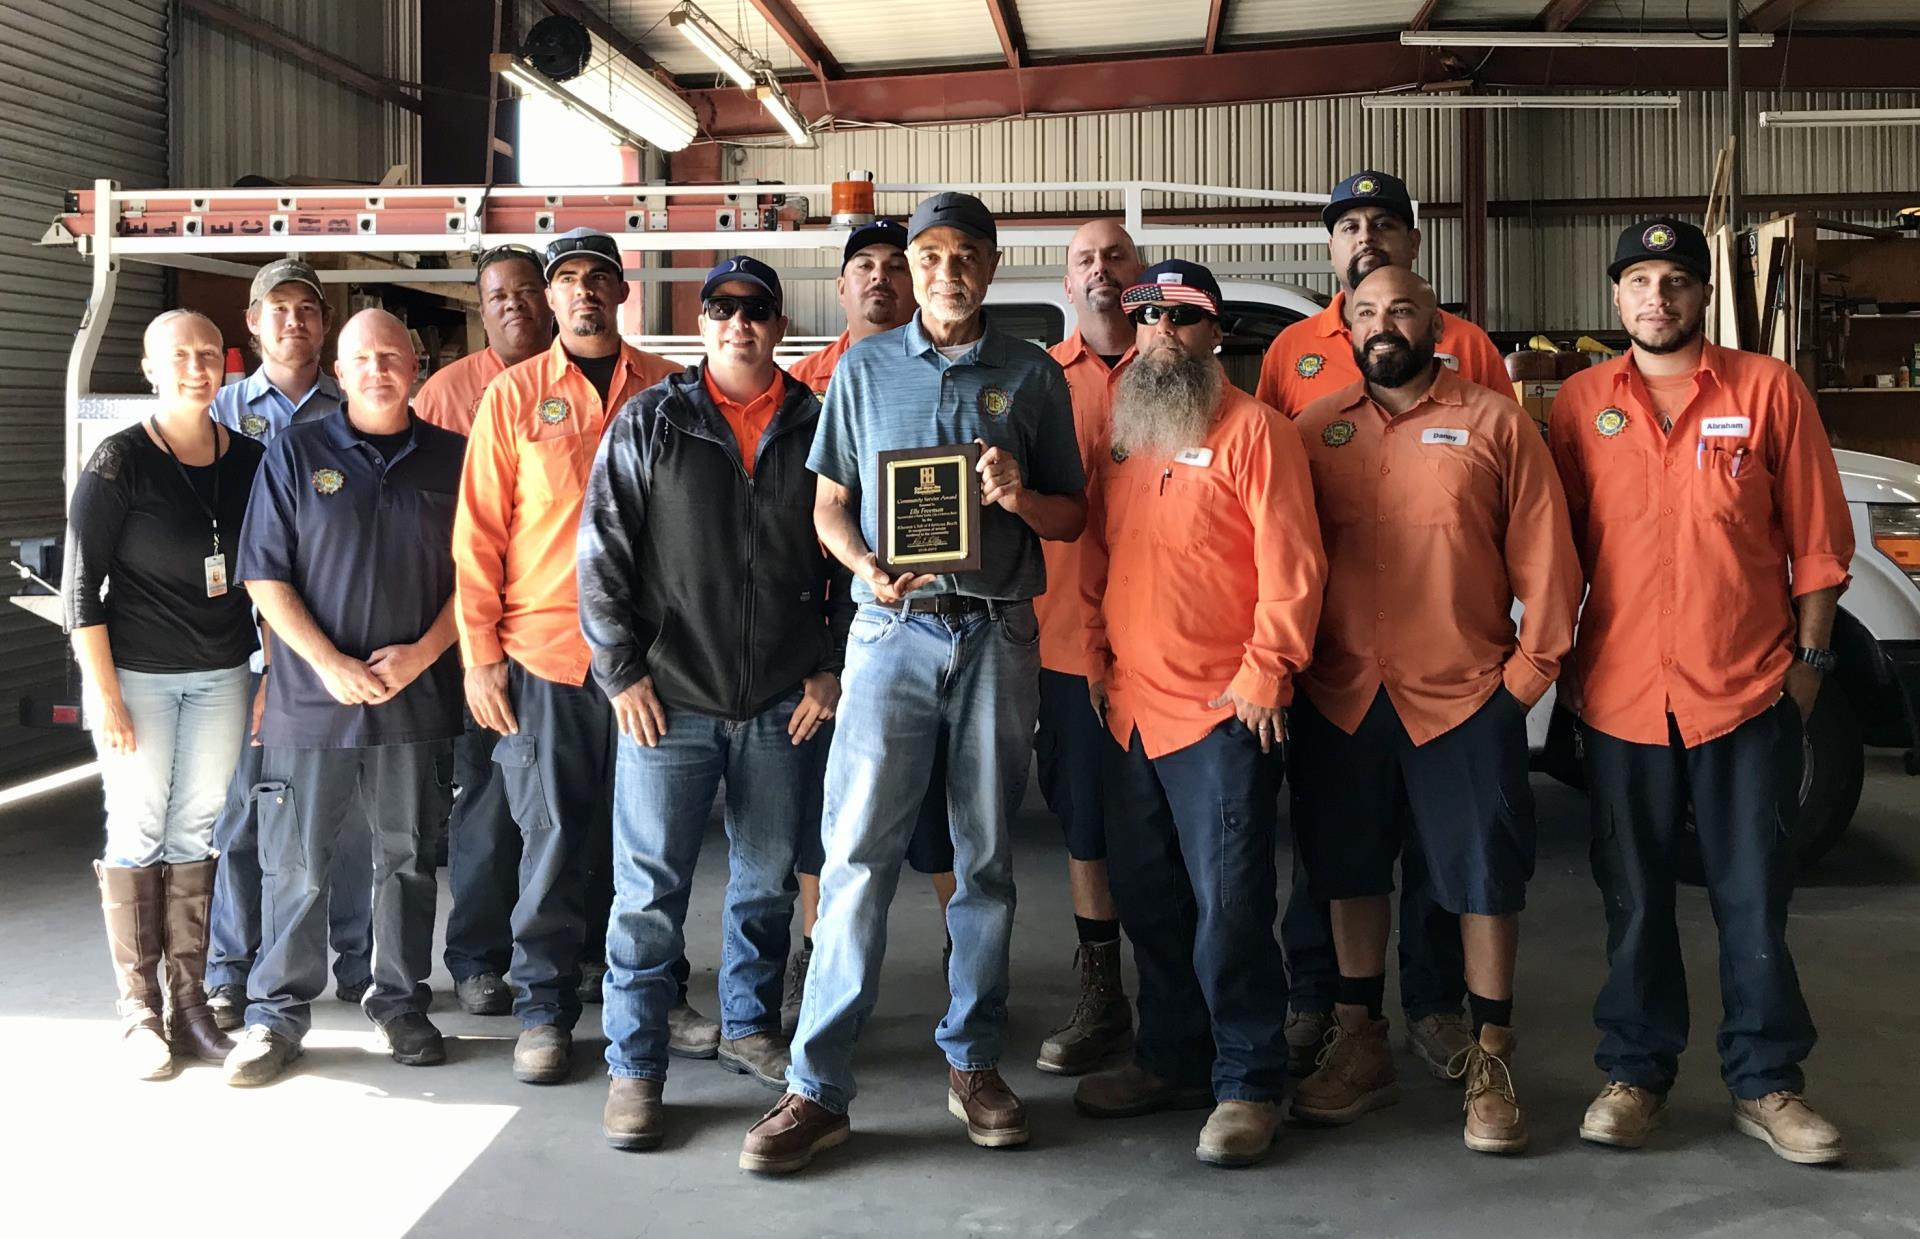 Public Works Superintendent Ells Freeman and crew - October 2019 Kiwanis Club recognition event at the City Yard